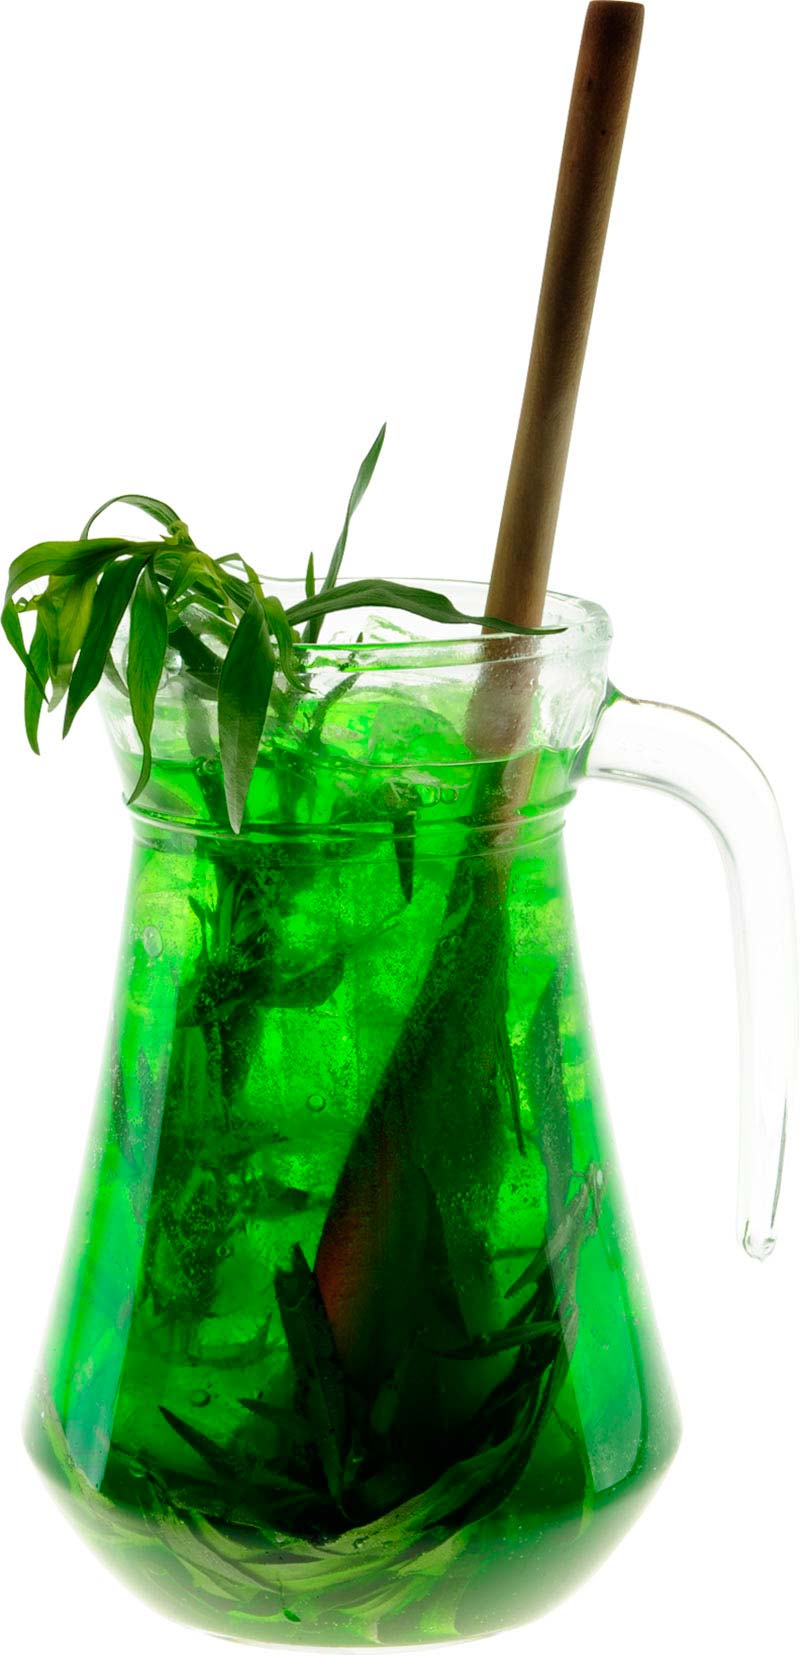 How to Make the Tarragon Lemonade